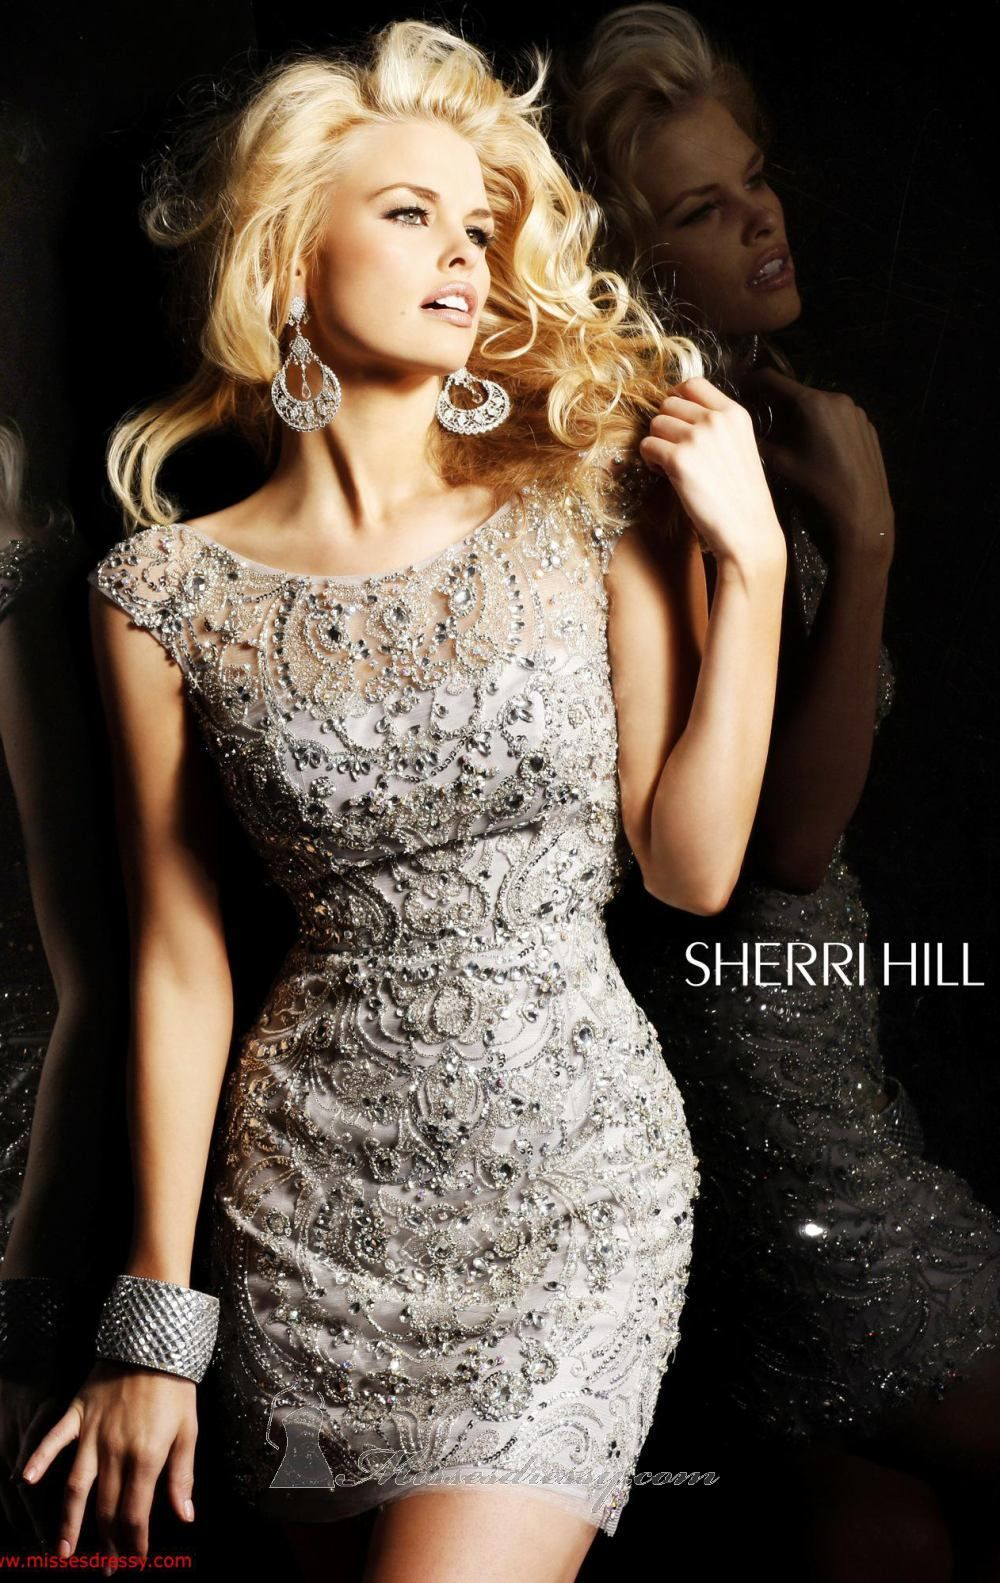 Sherri Hill 2948 Dress - MissesDressy.com | BORDADO E PED VESTIDOS ...